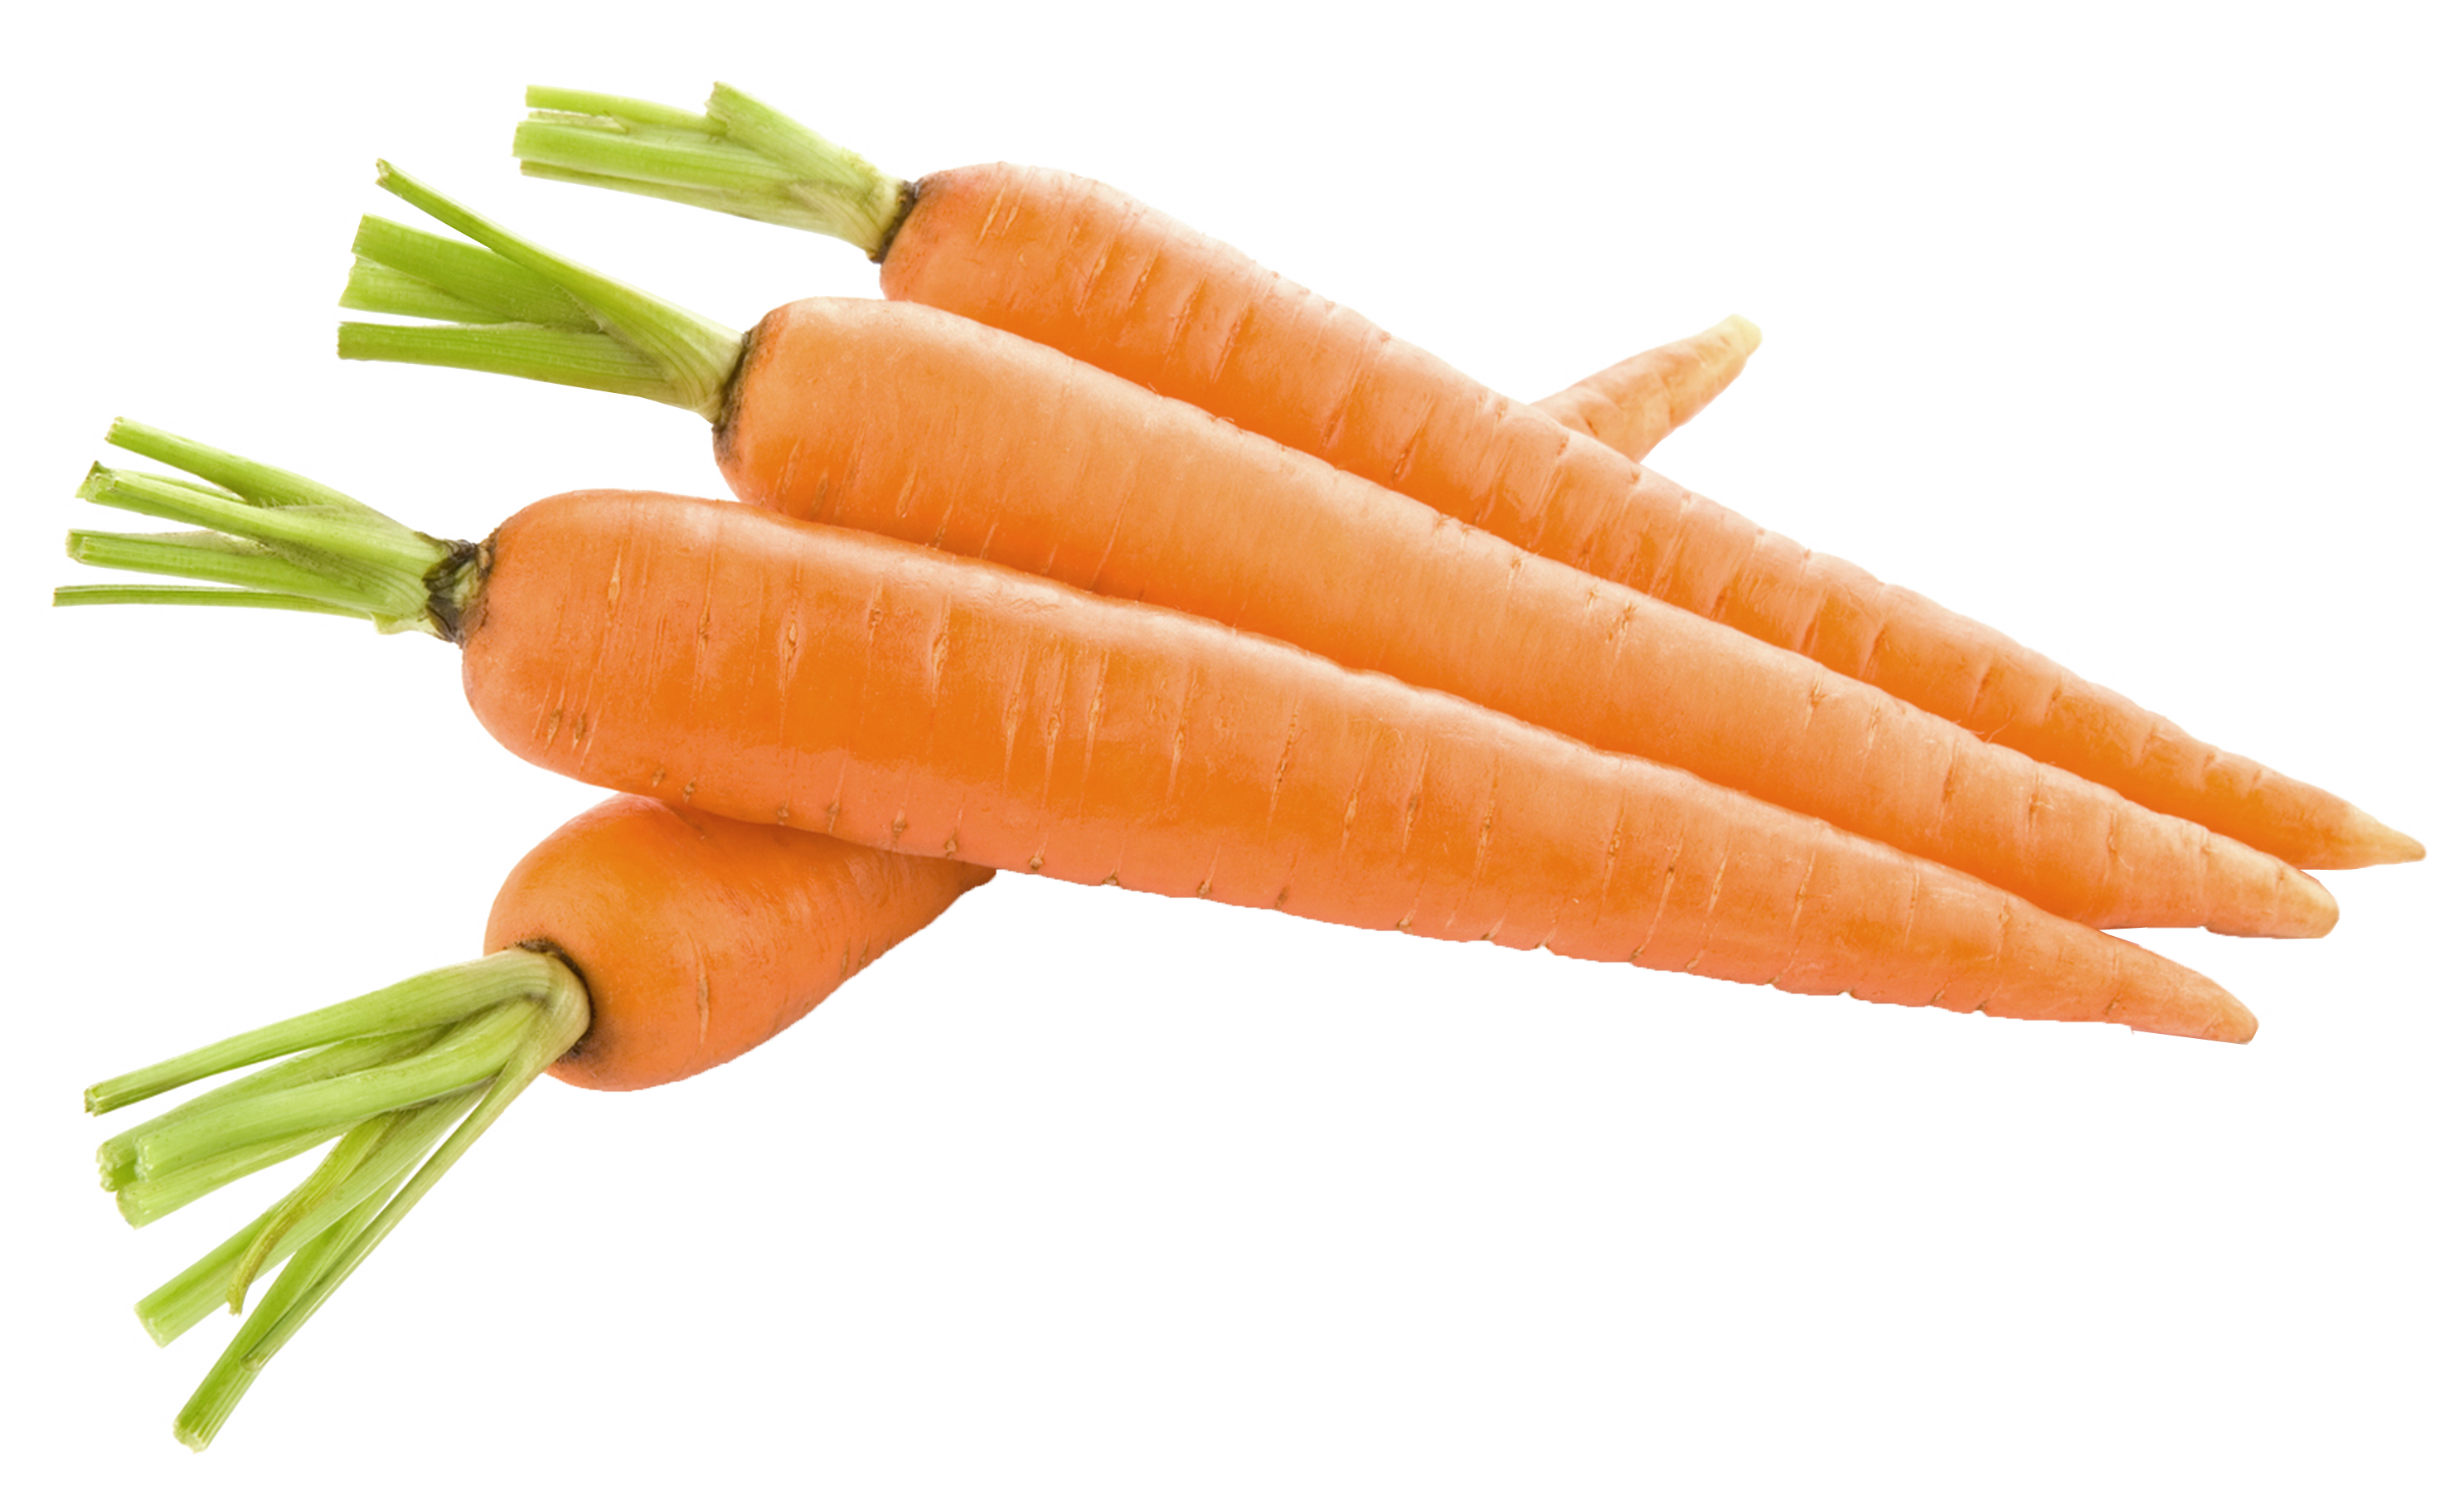 clip art royalty free stock Carrots png picture gallery. Transparent carrot